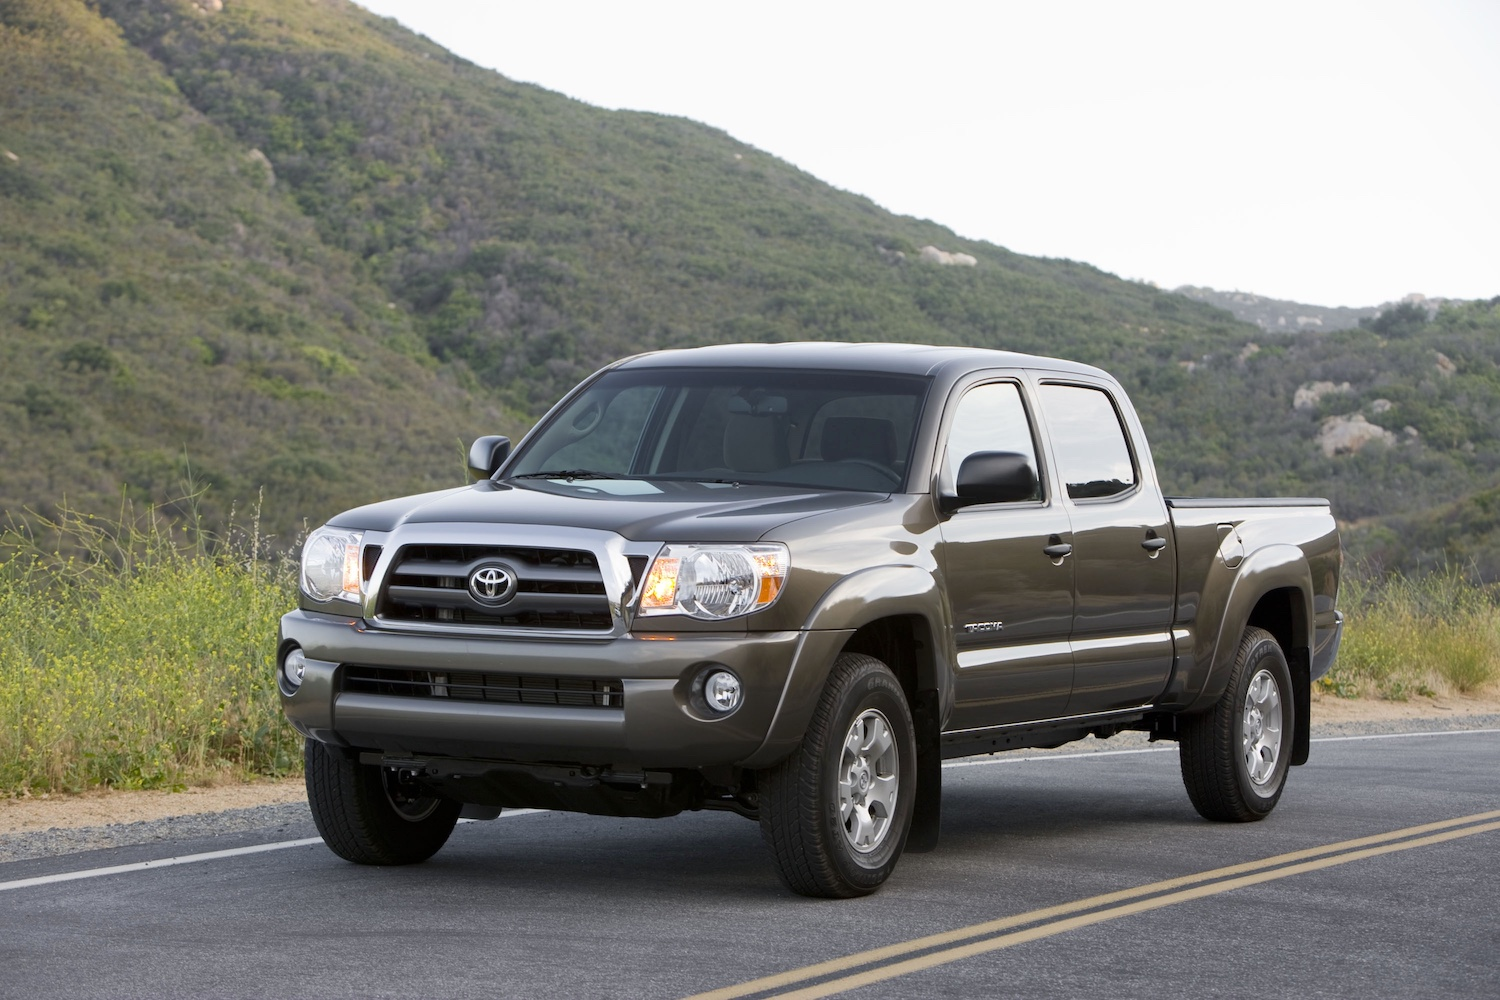 a 2009 model from the second Toyota Tacoma generation driving on a mountain road.